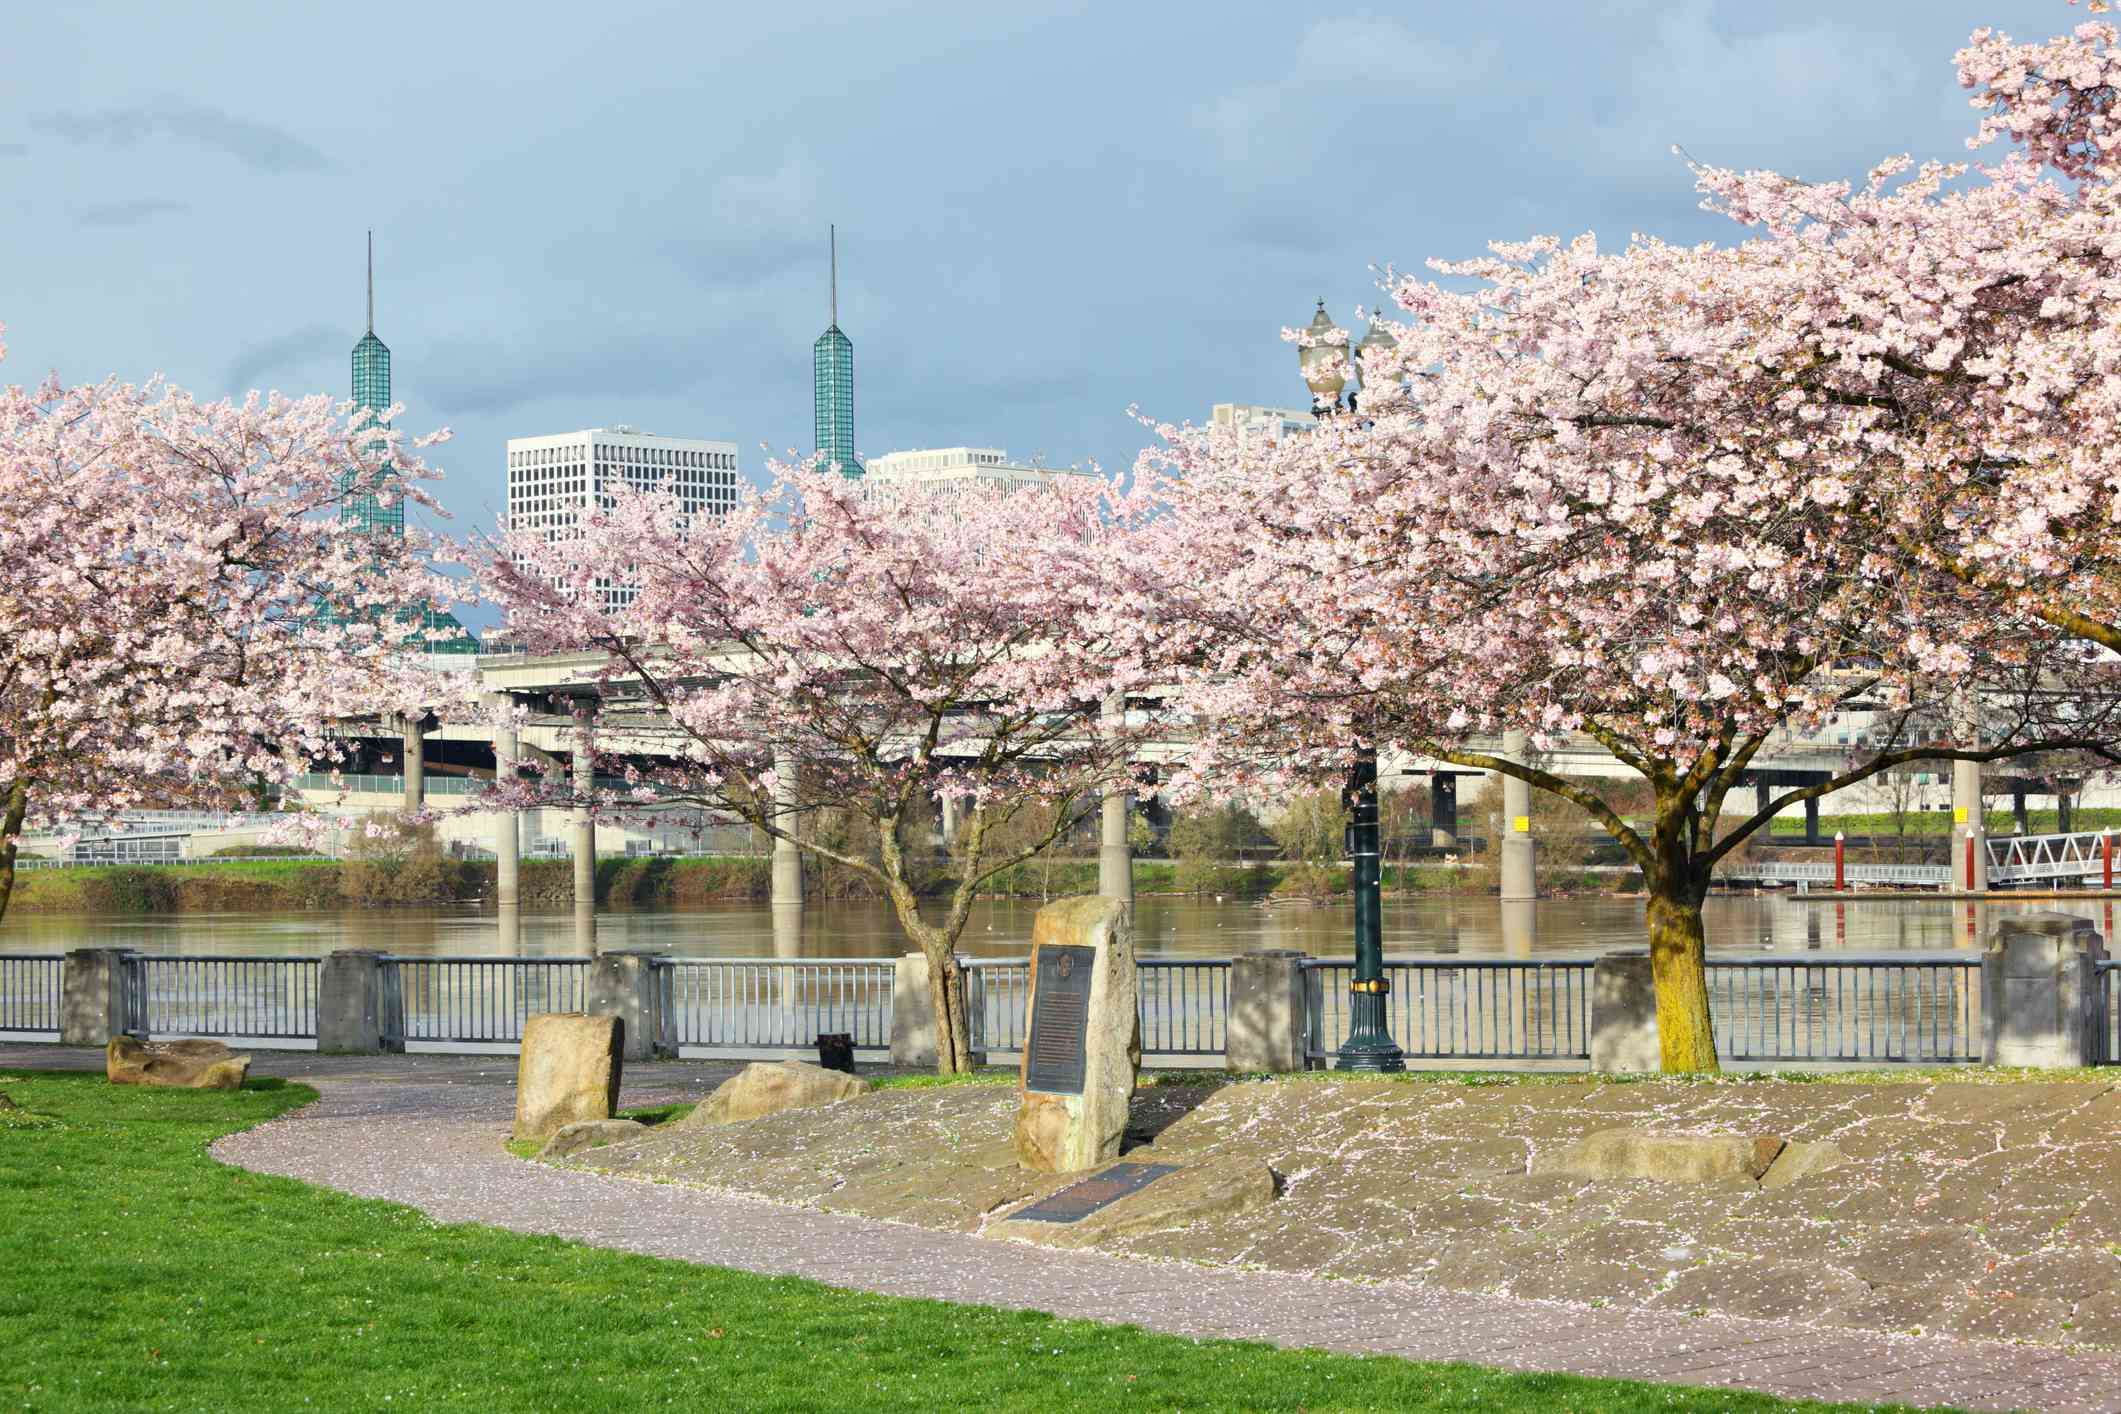 A stand of pink blooming cherry blossom trees along the waterfront at Portland's Japanese American Historical Plaza under a partly cloudy, partly sunny sky